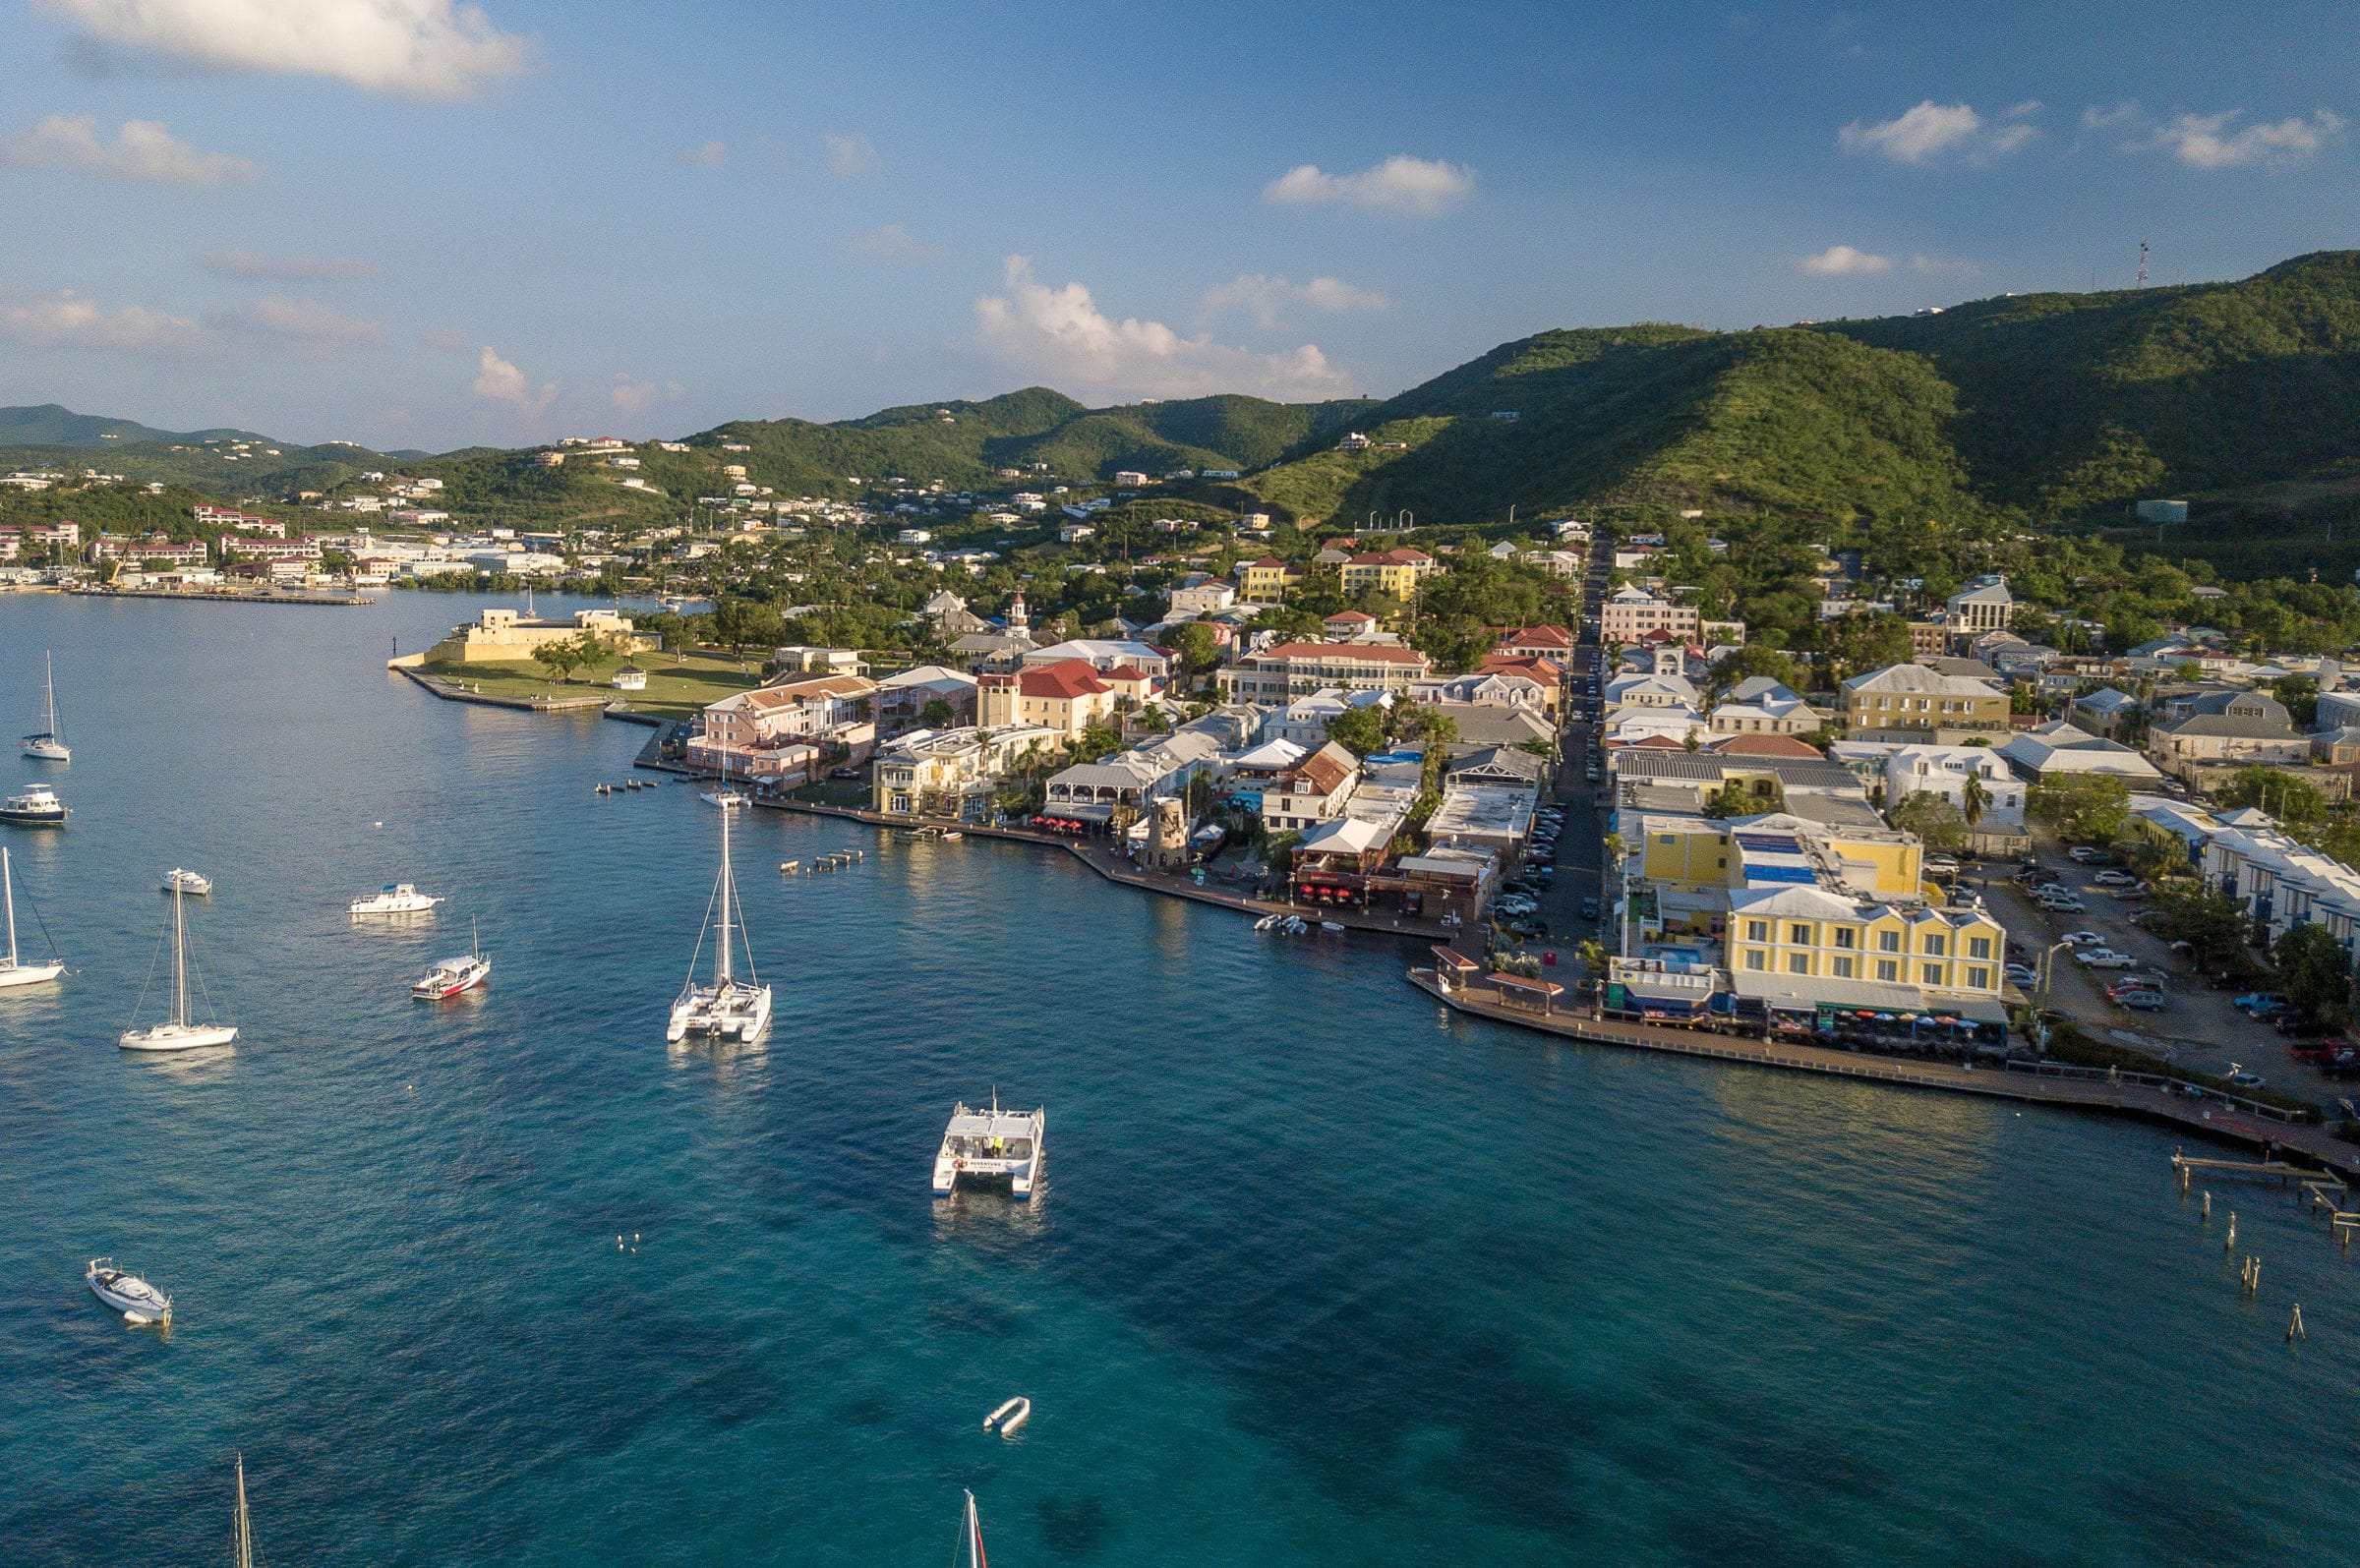 High above Christiansted, St. Croix | Patrick Bennett